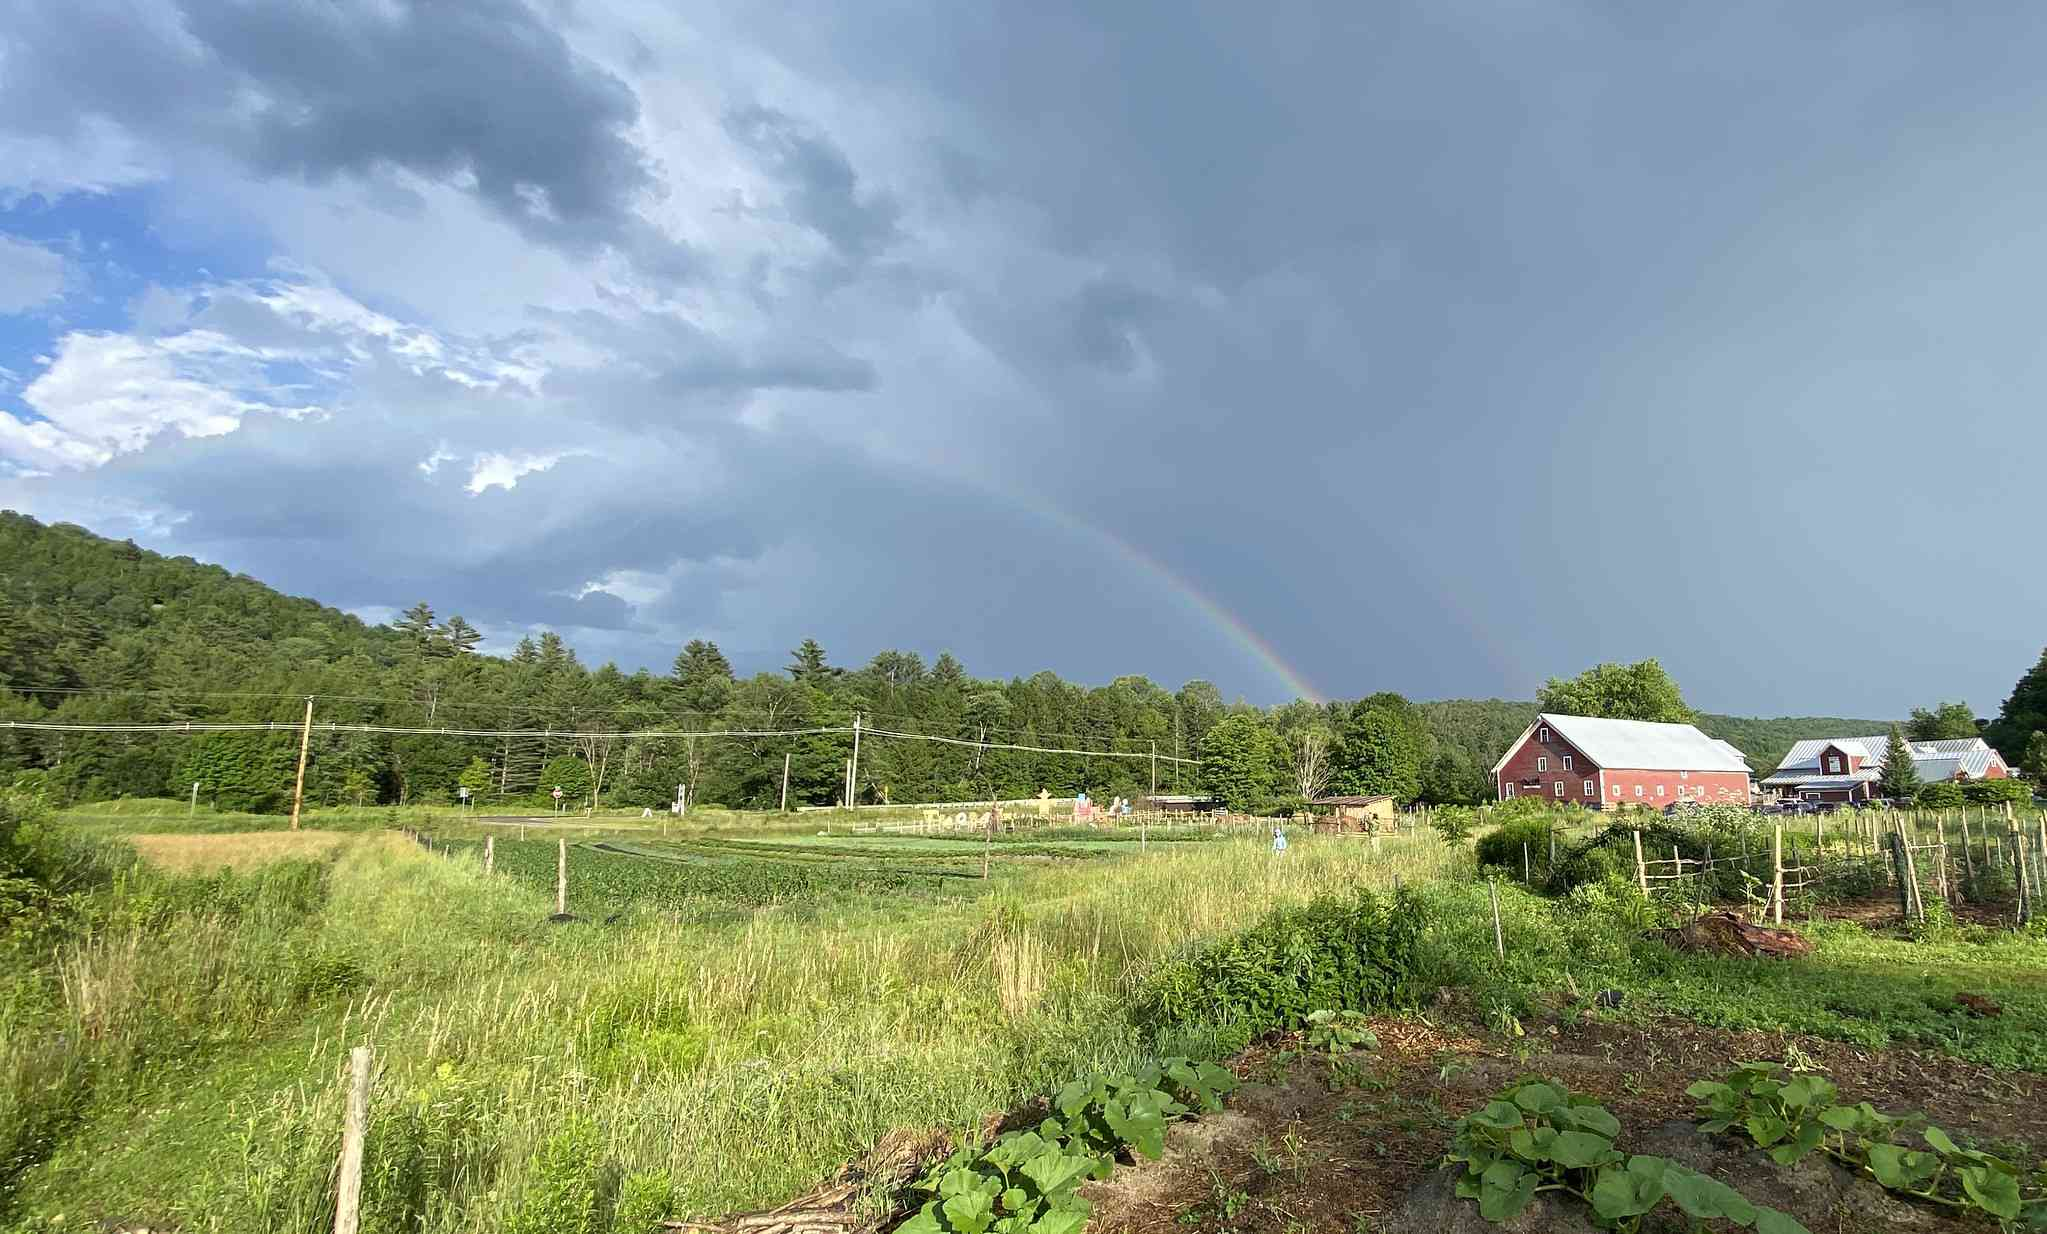 red farm house in a green field. the sky over head is gray but there is a rainbow in the distance